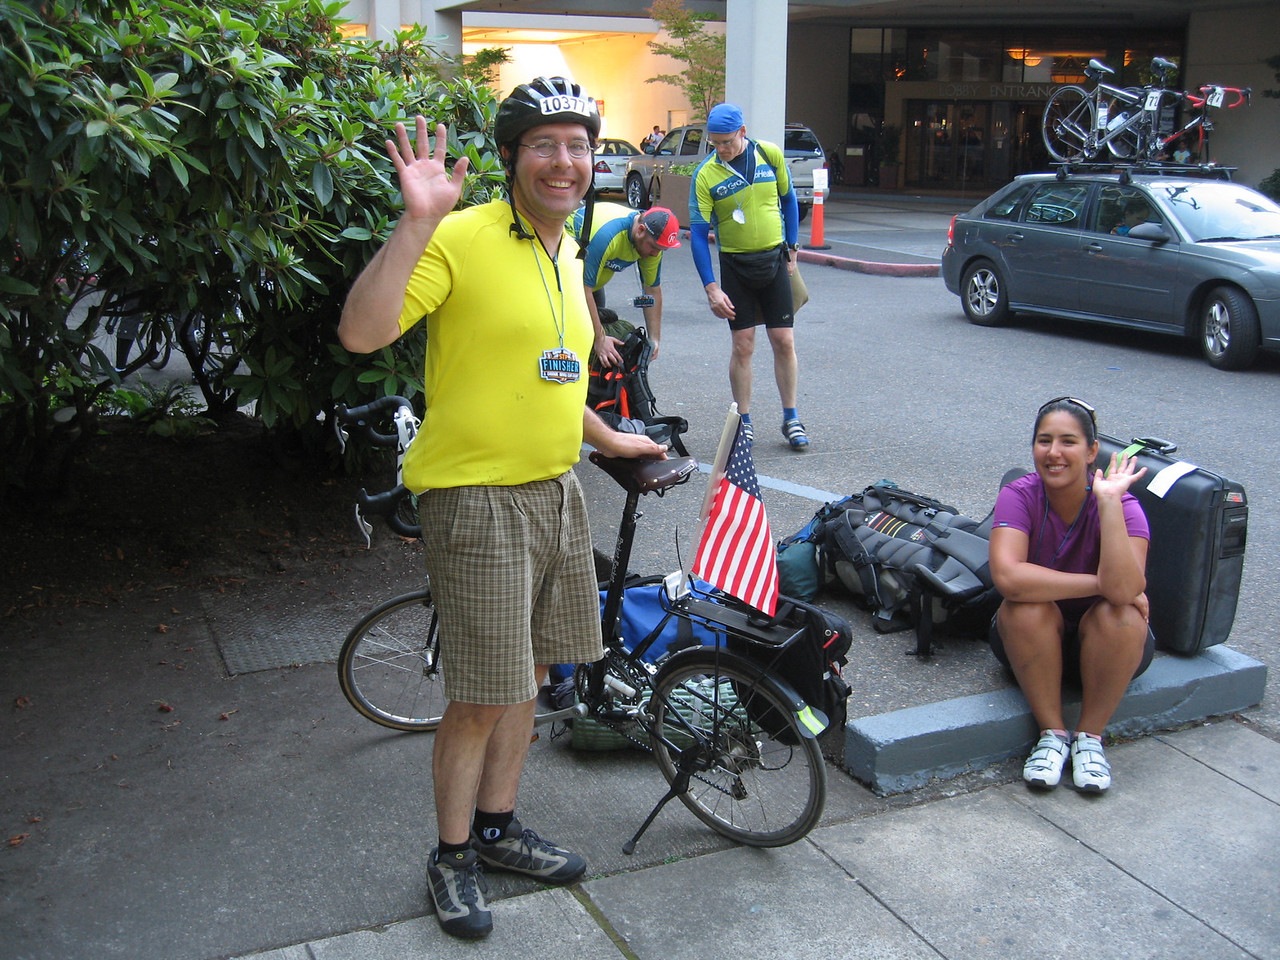 Bob & Nancy all smiles at the finish line - about to get the MAX to Brett's place for a welcome pint.